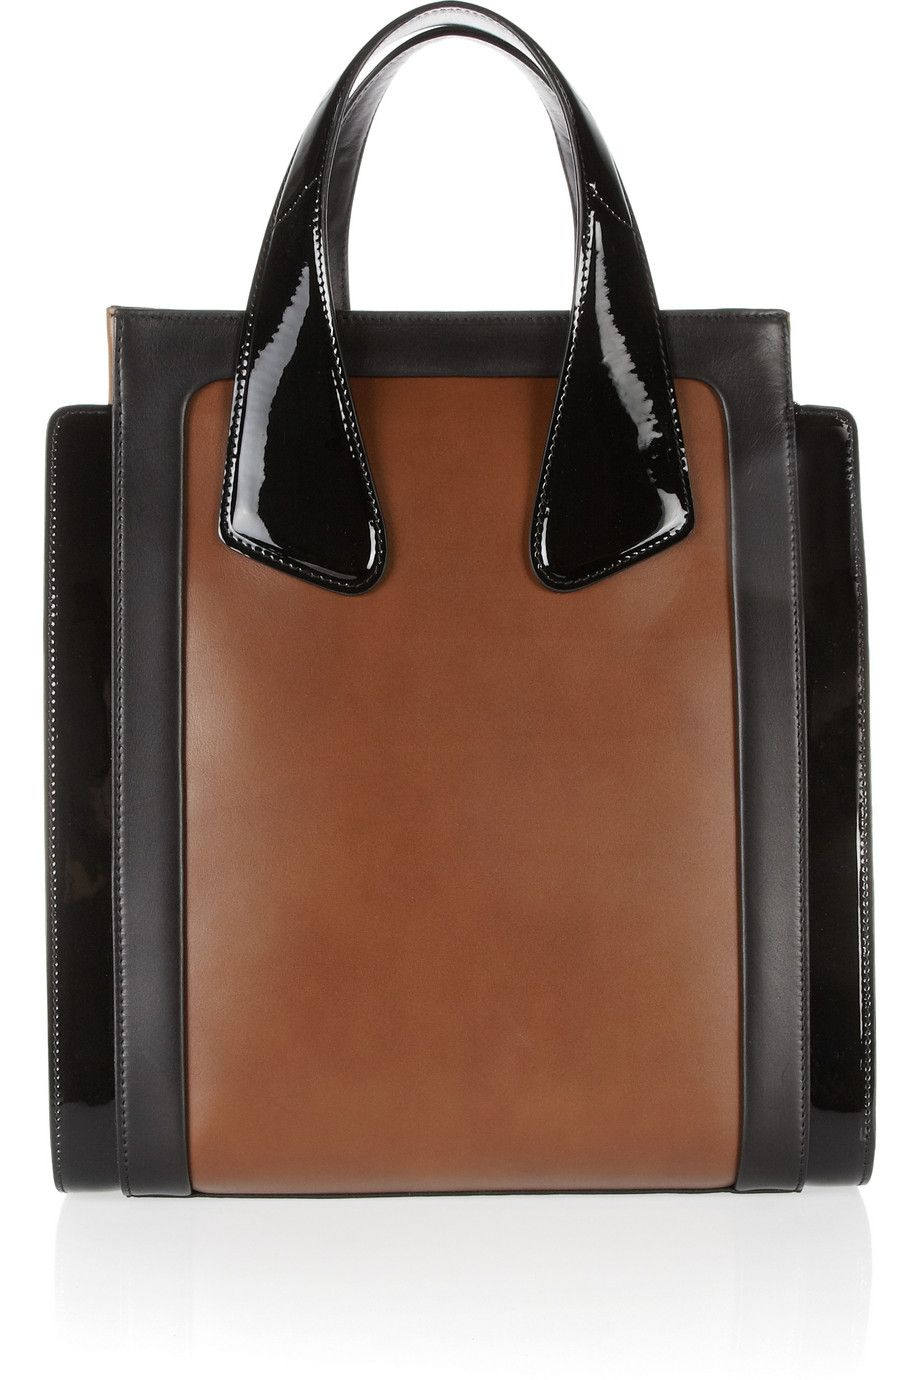 Dyna two-tone leather tote by Bally